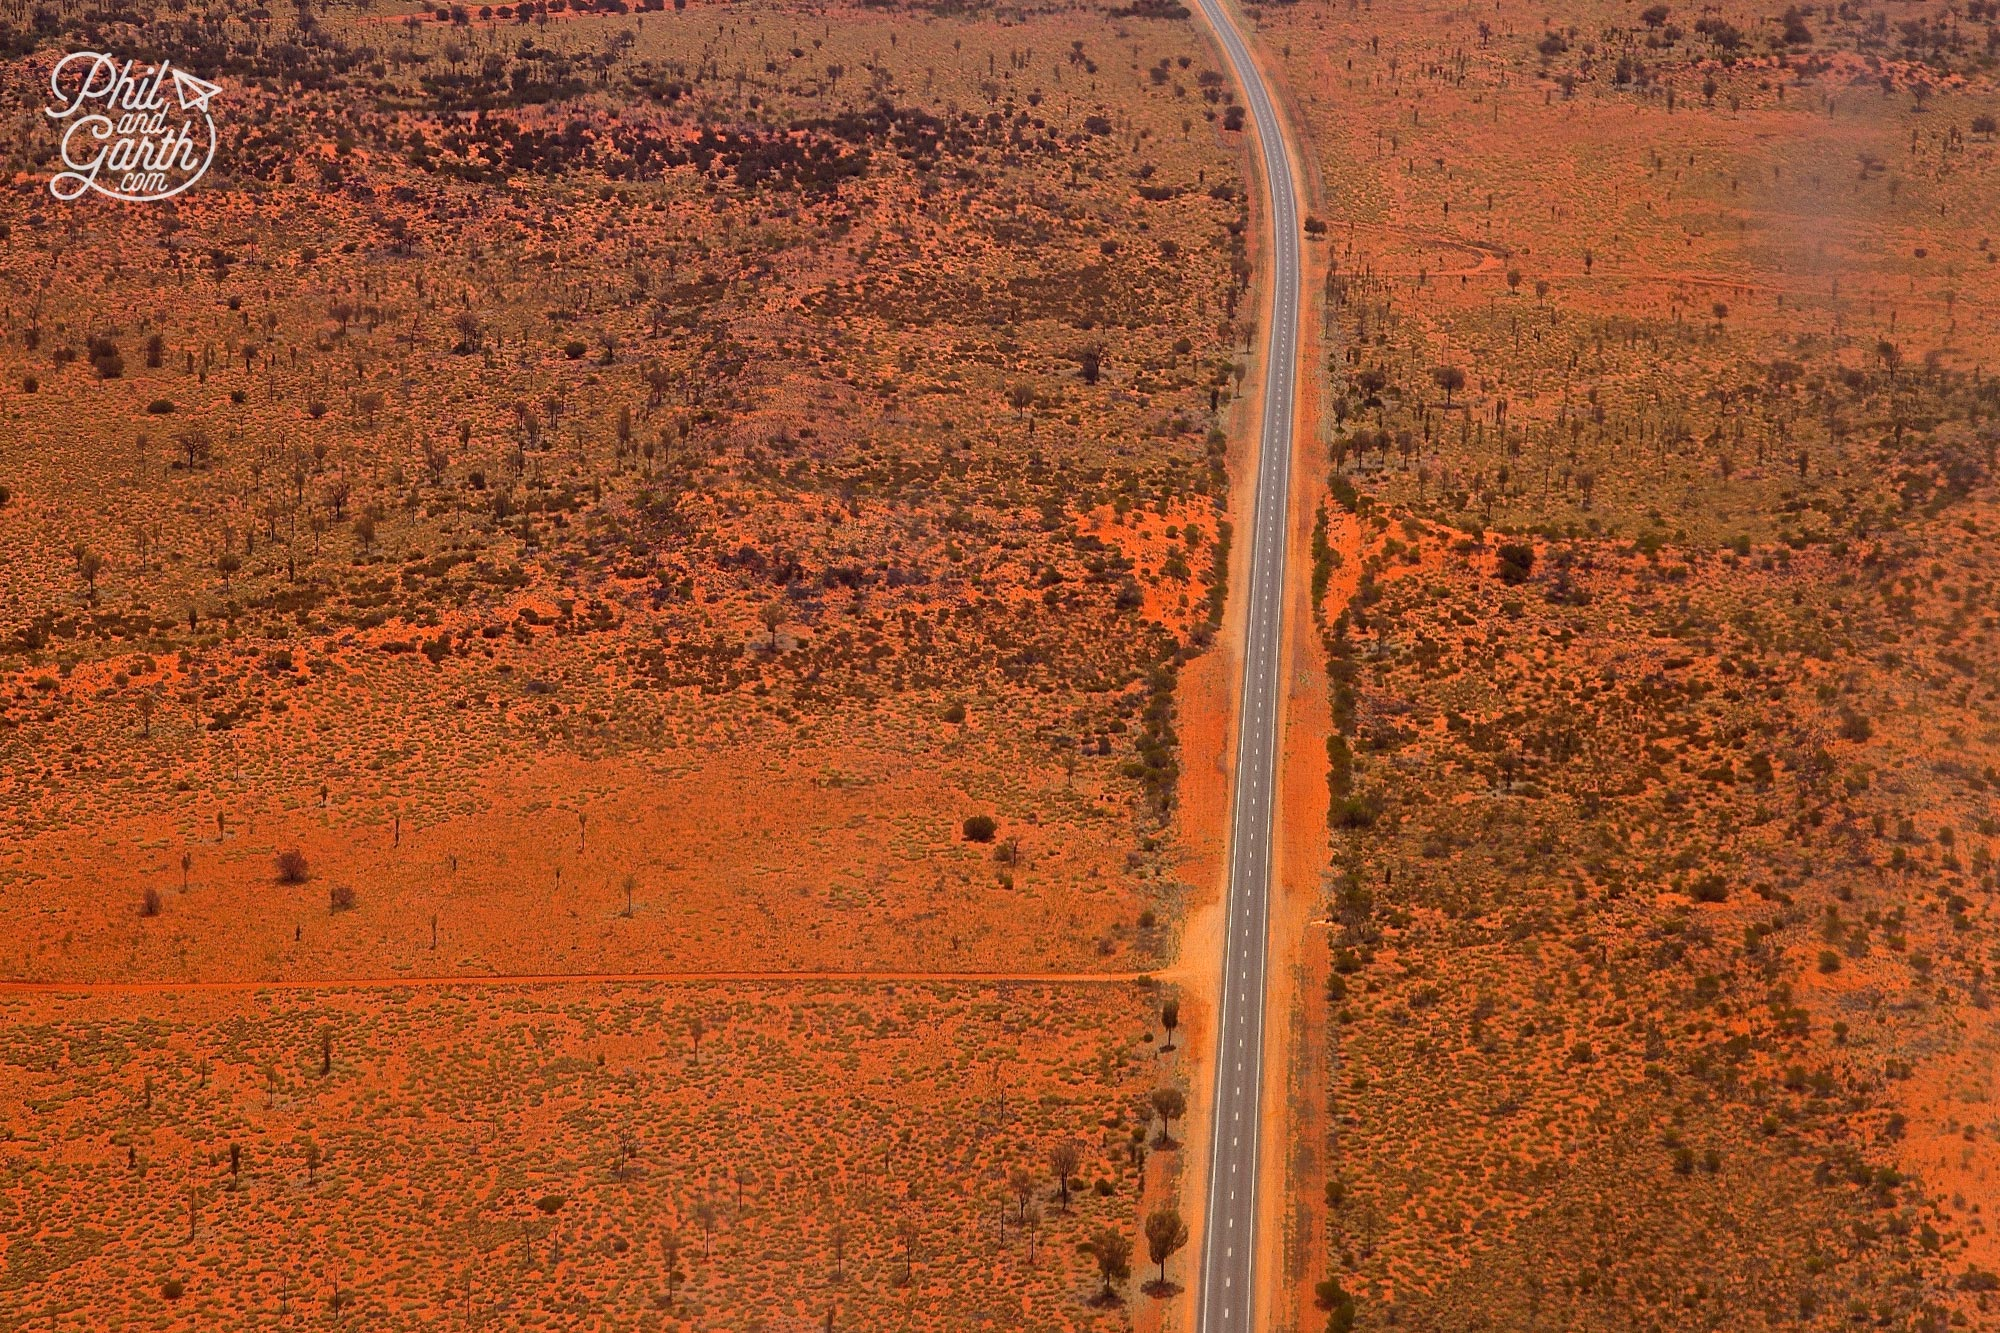 The wild Australian outback as seen from the air